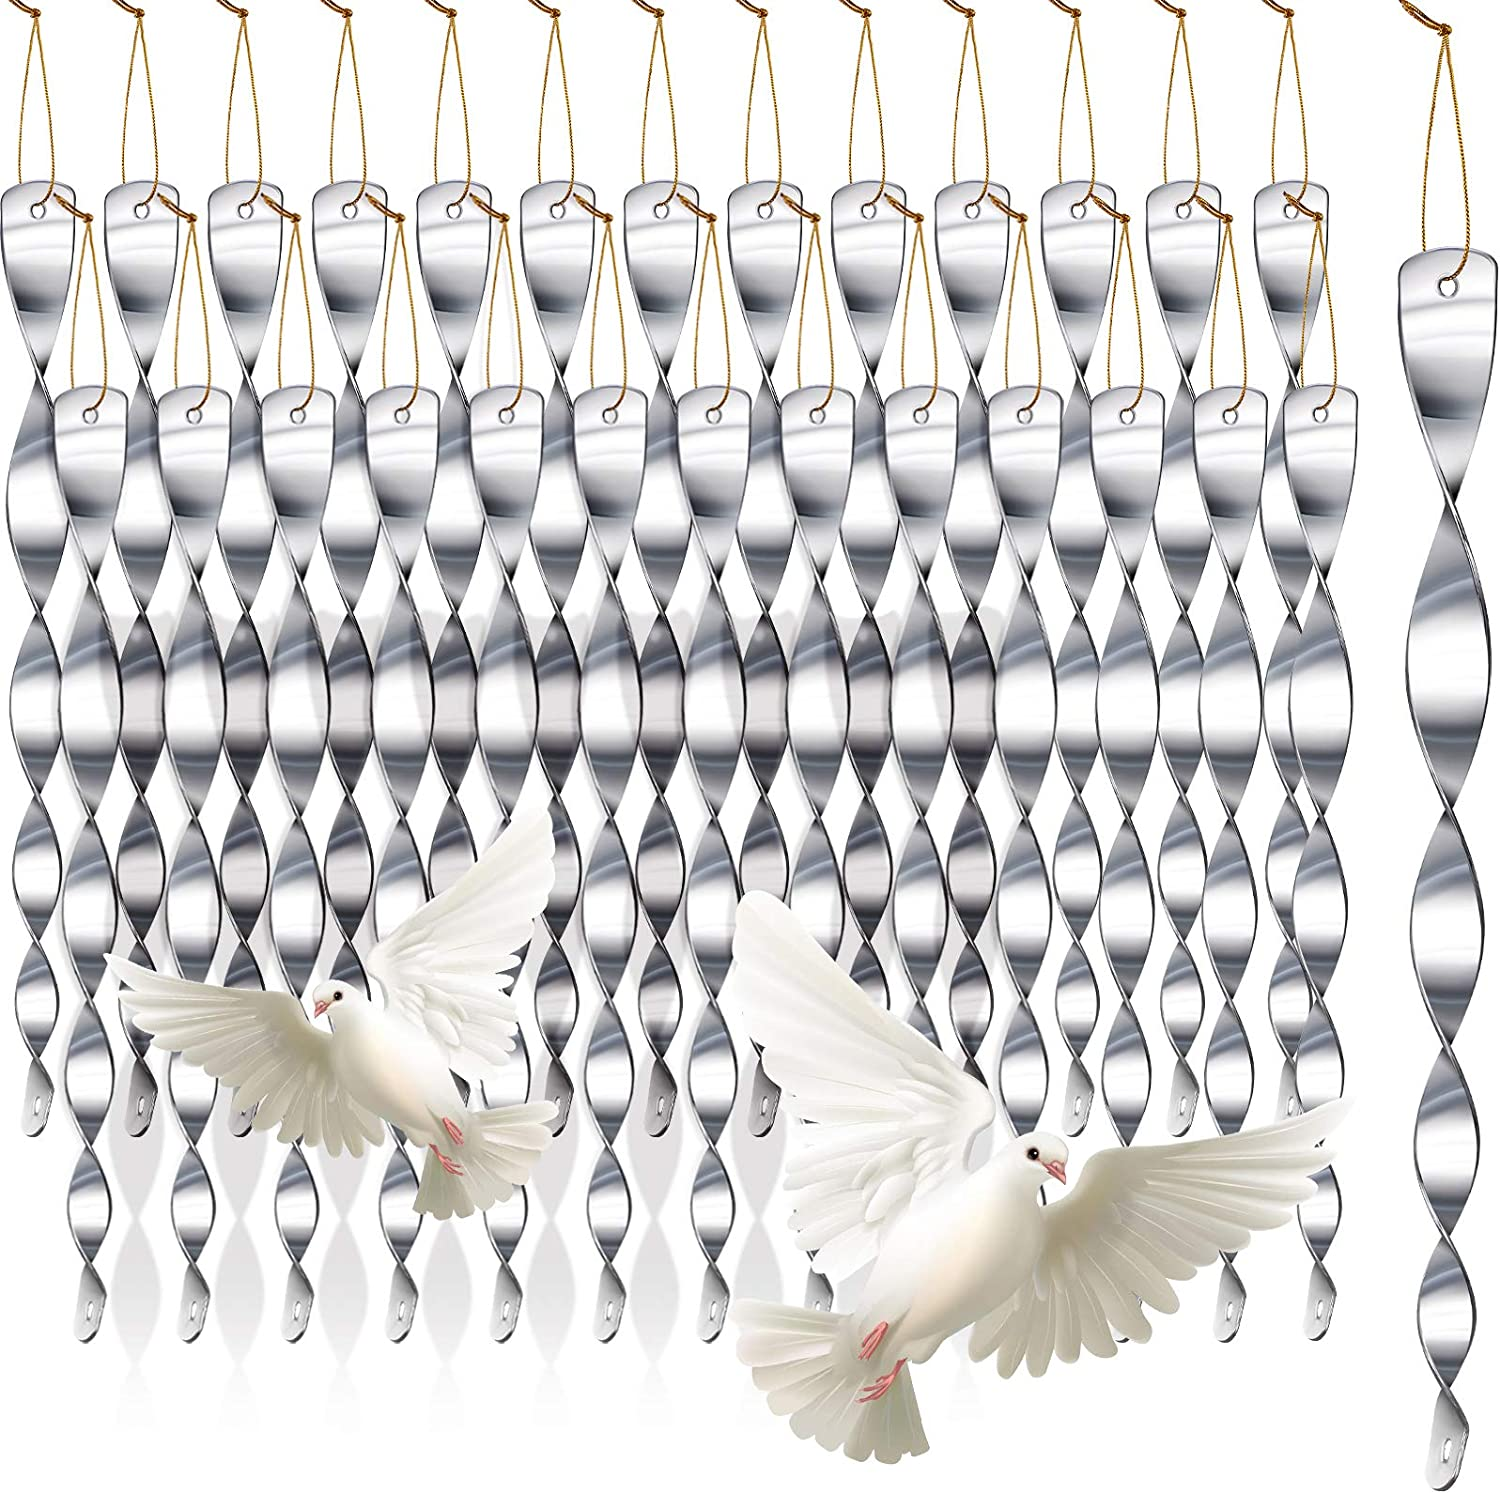 YoungJoy 30 Pcs Reflective Scare Rods Wind Twisting Spiral Deterrent Device Hanging Reflectors (Silver, 30 Pcs)